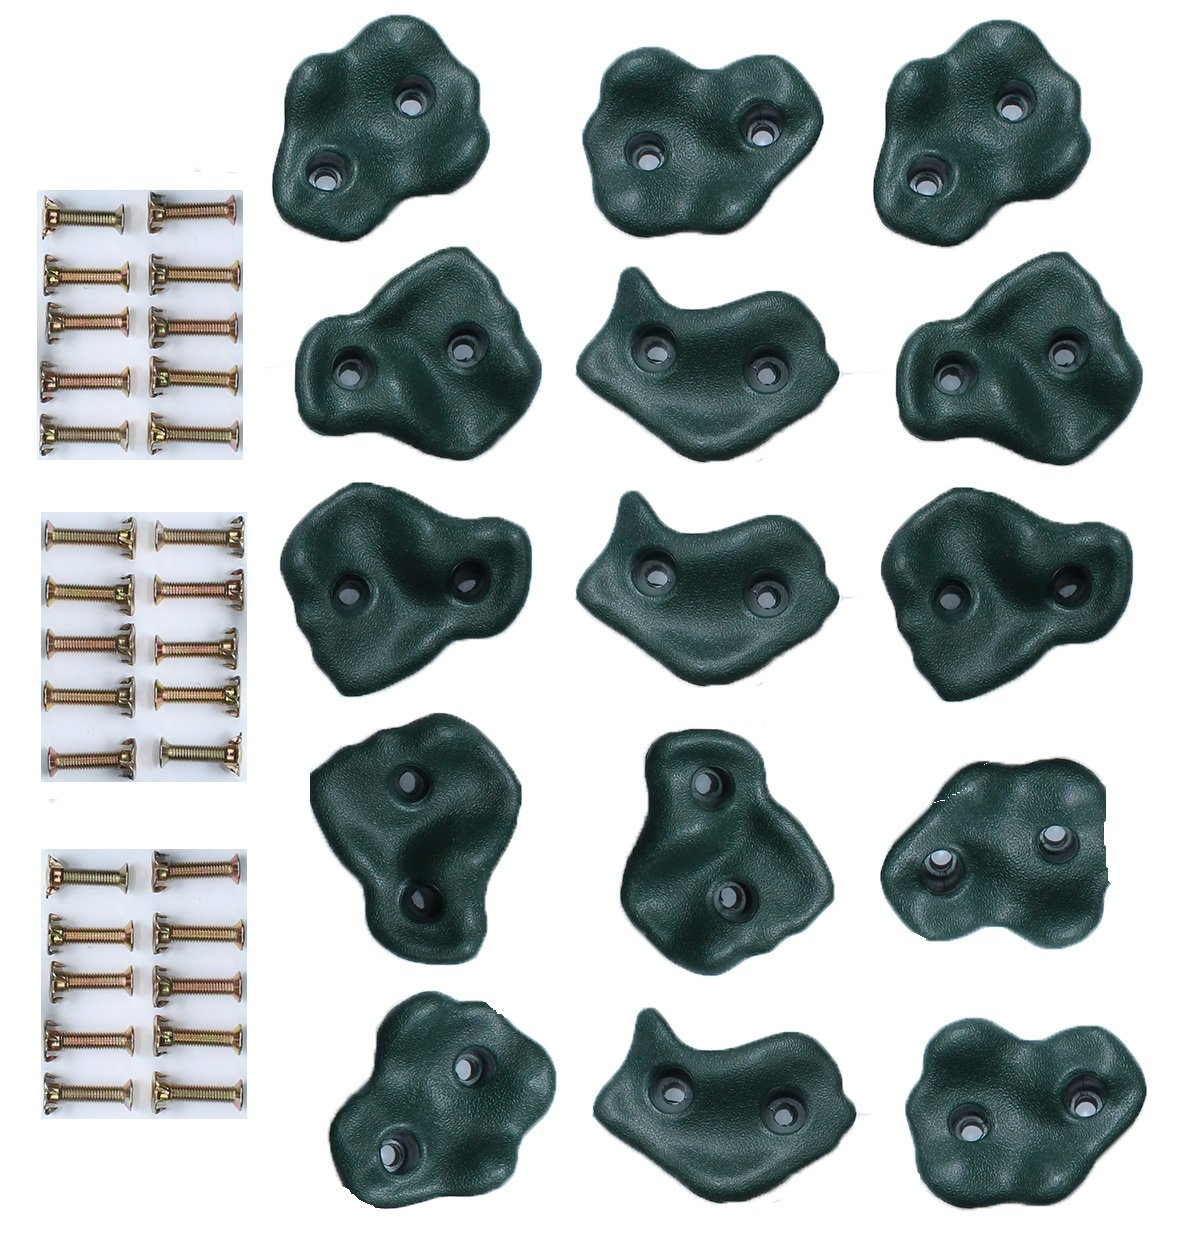 HIKS Plastic Climbing Stones Holds & Grips, Ideal For Climbing Frames , Tree Houses And Kids Climbing Walls (Pack of 5 Grips)